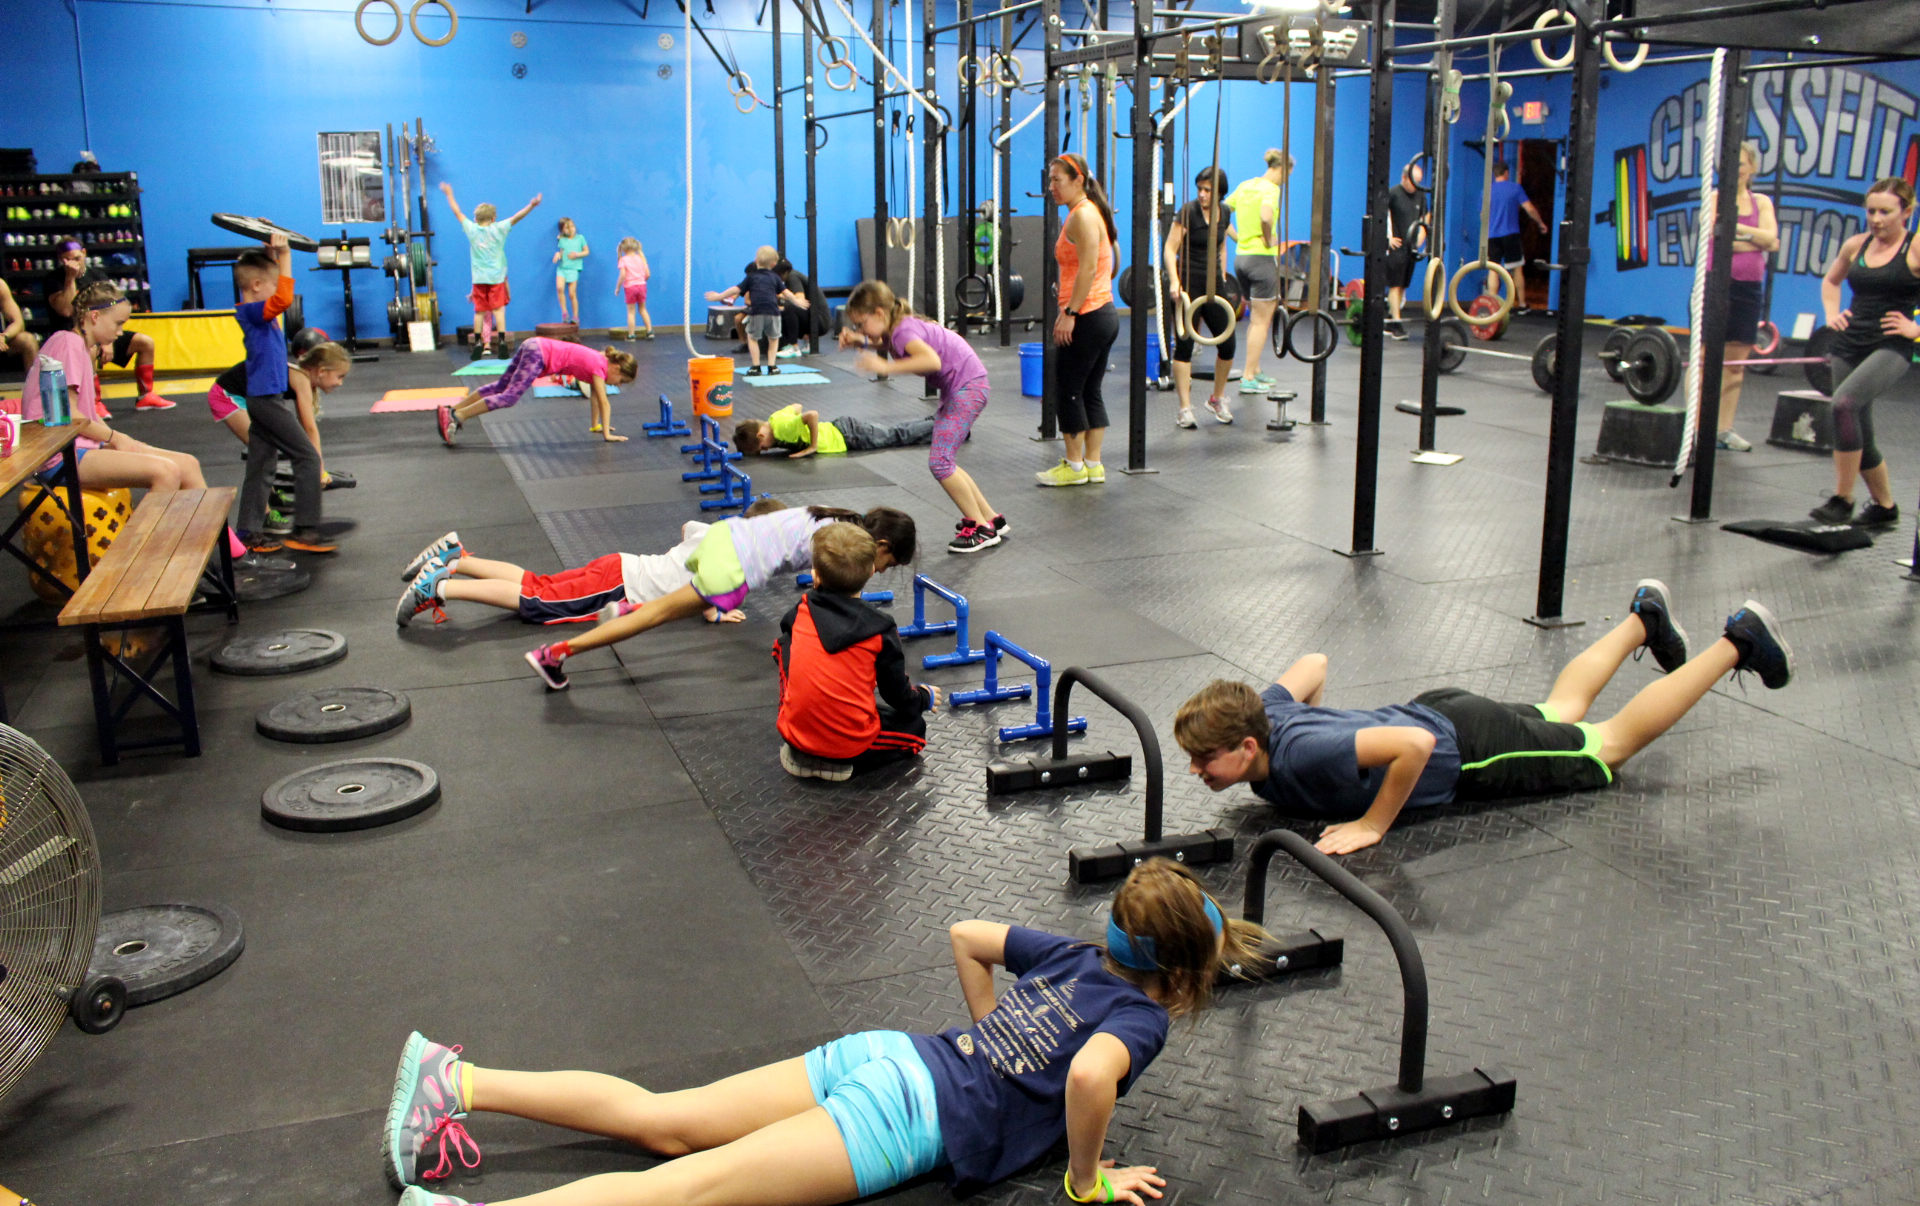 All ages working out!